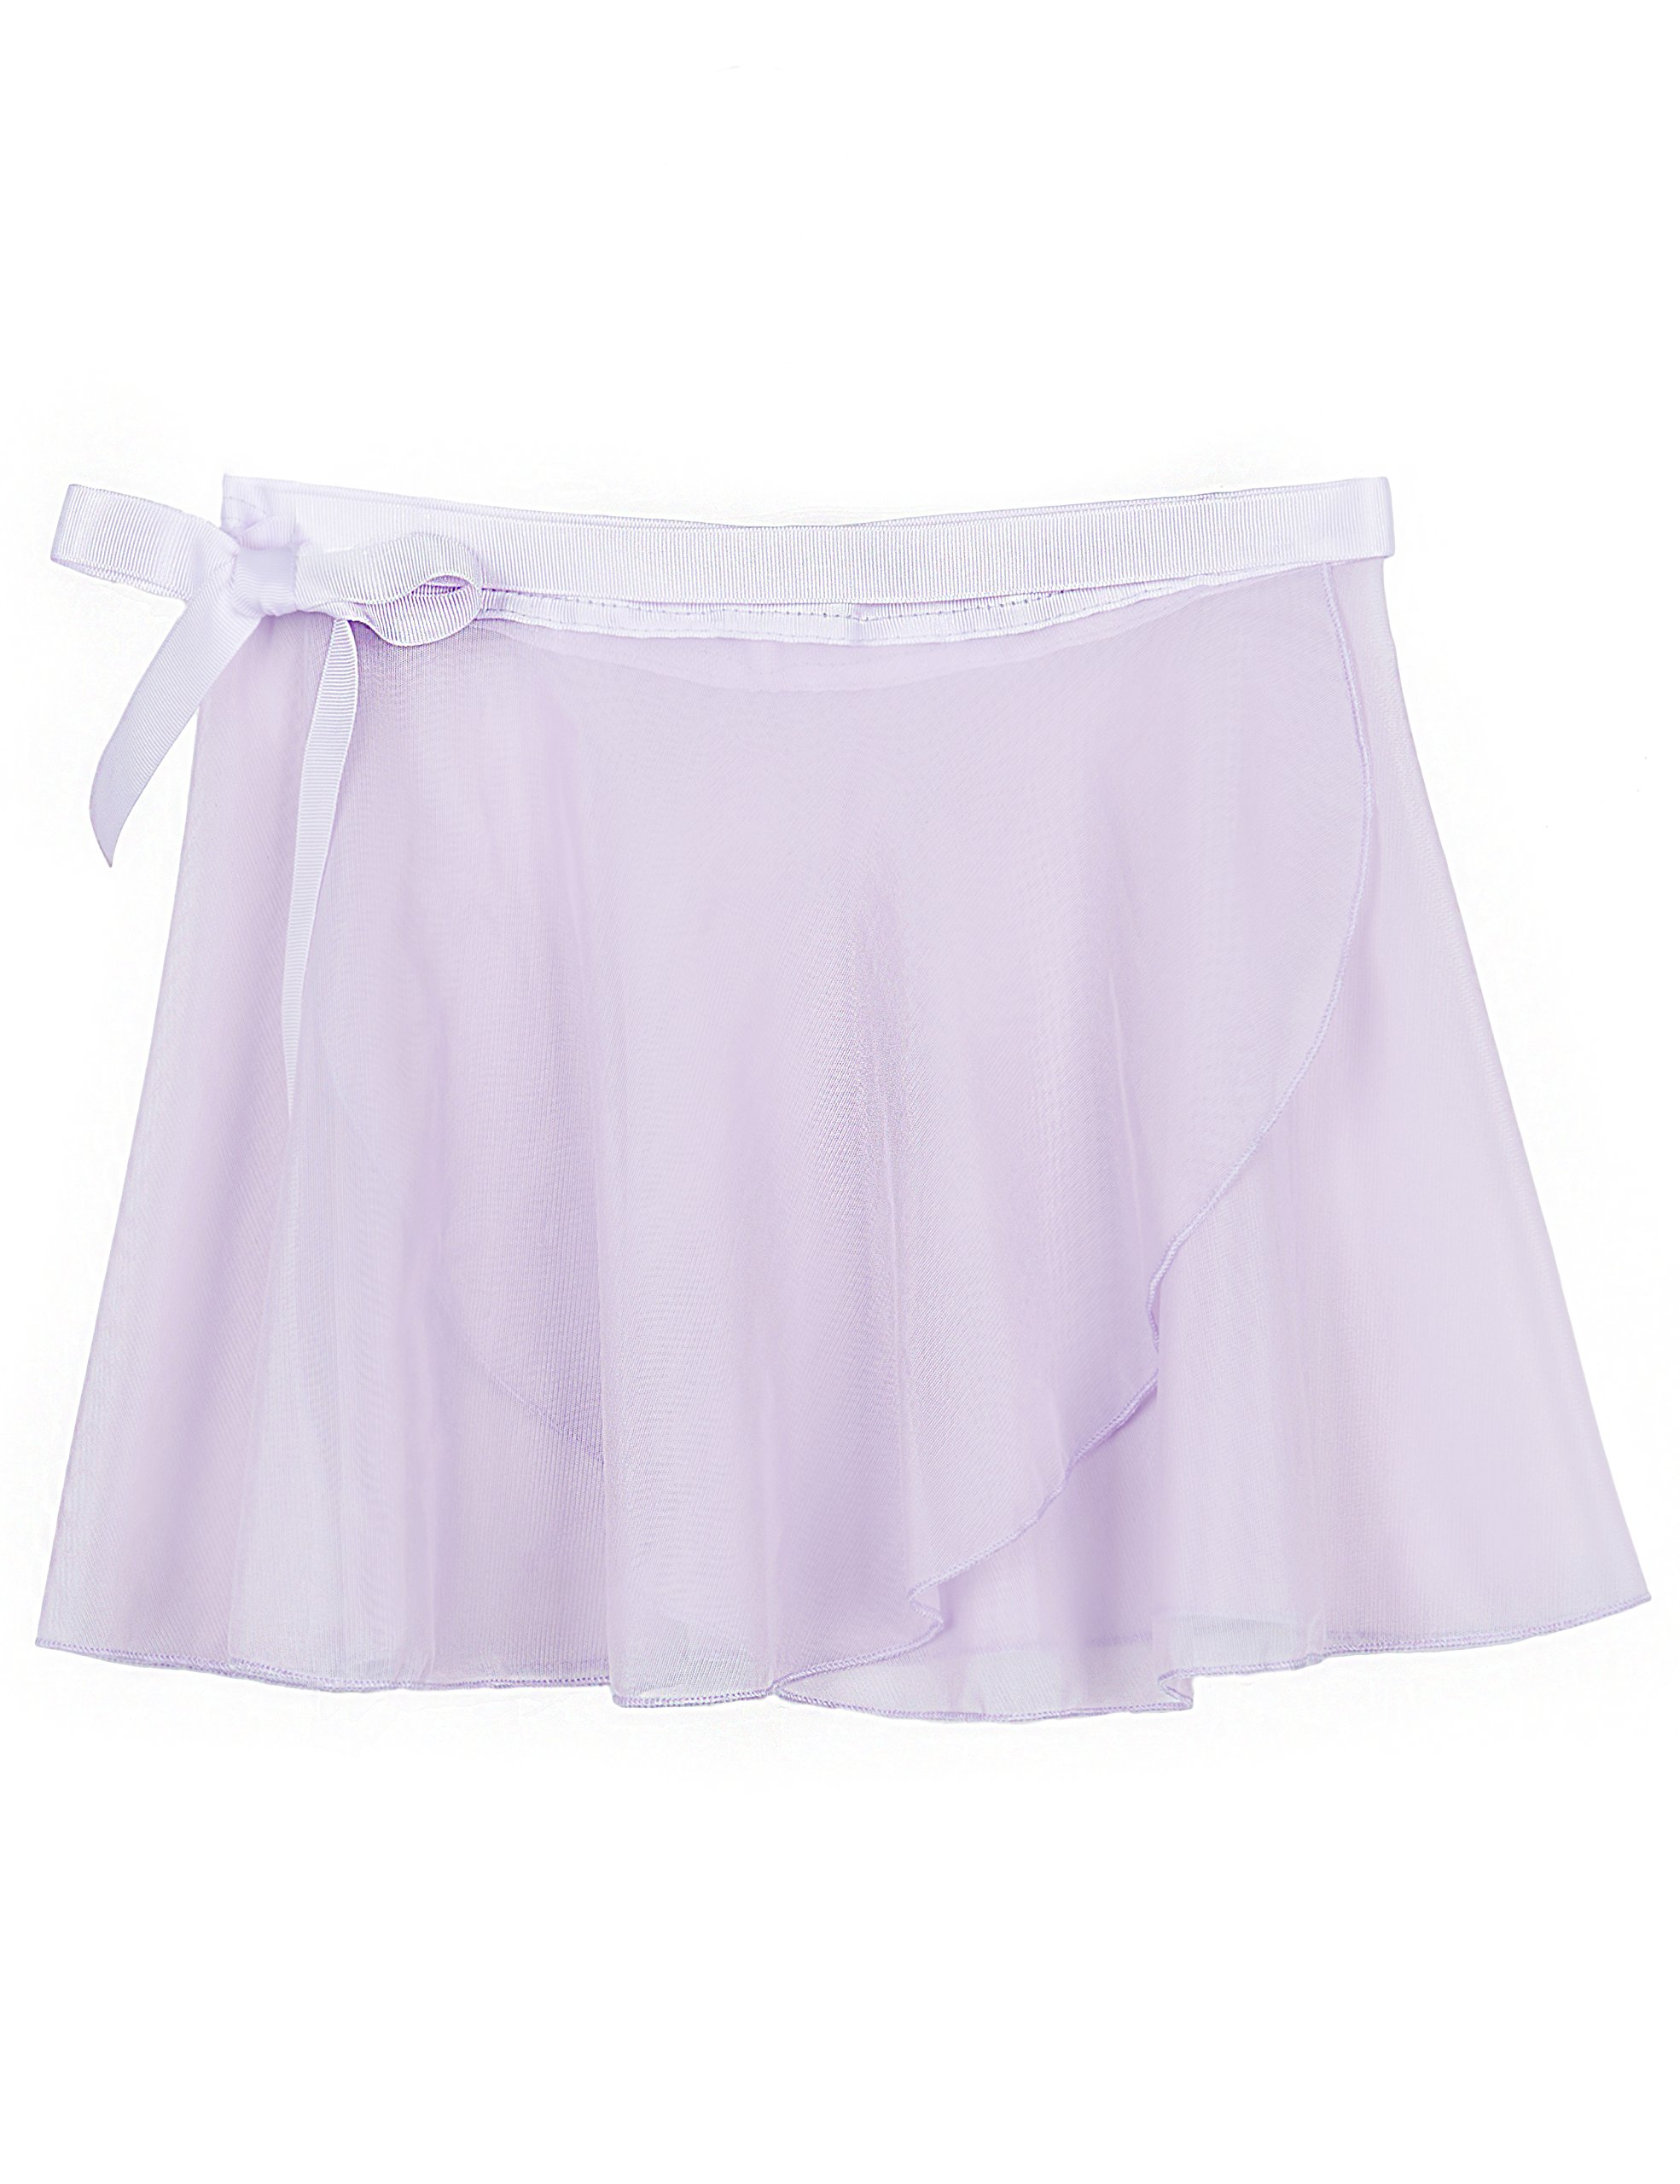 MdnMd Ballet Skirt for Girls with Tie Waist (Purple, Age 8-12,Height 57-64'')